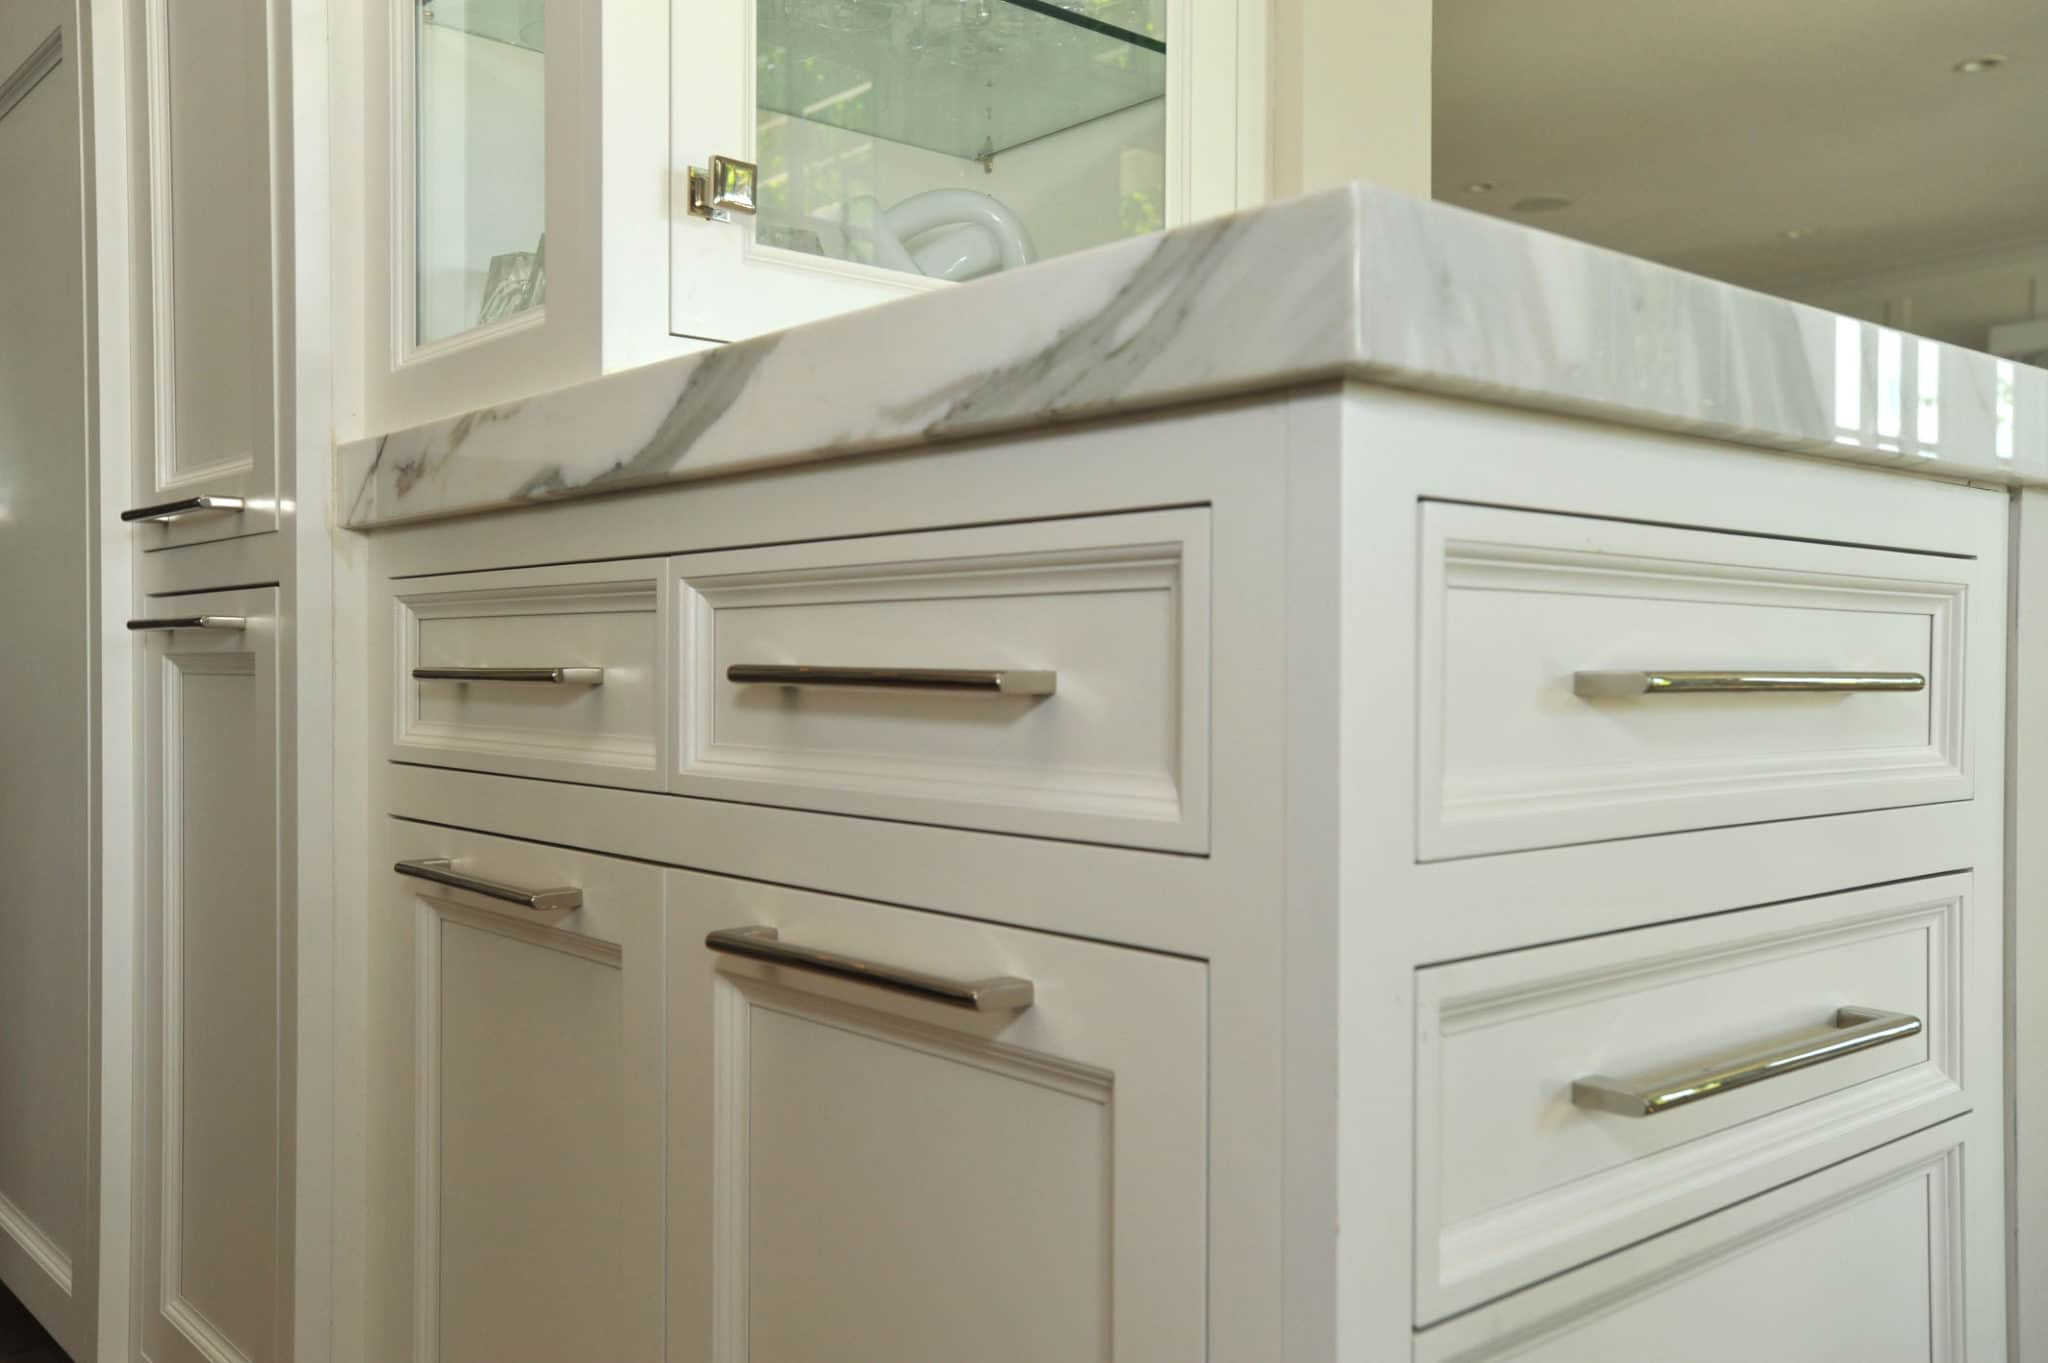 Explore The Different Cabinet Hardware Lines We Offer Below, Including  Berenson, Richelieu, Emtek, Top Knobs And Atlas, On Their Sites Or At One  Of Our ...